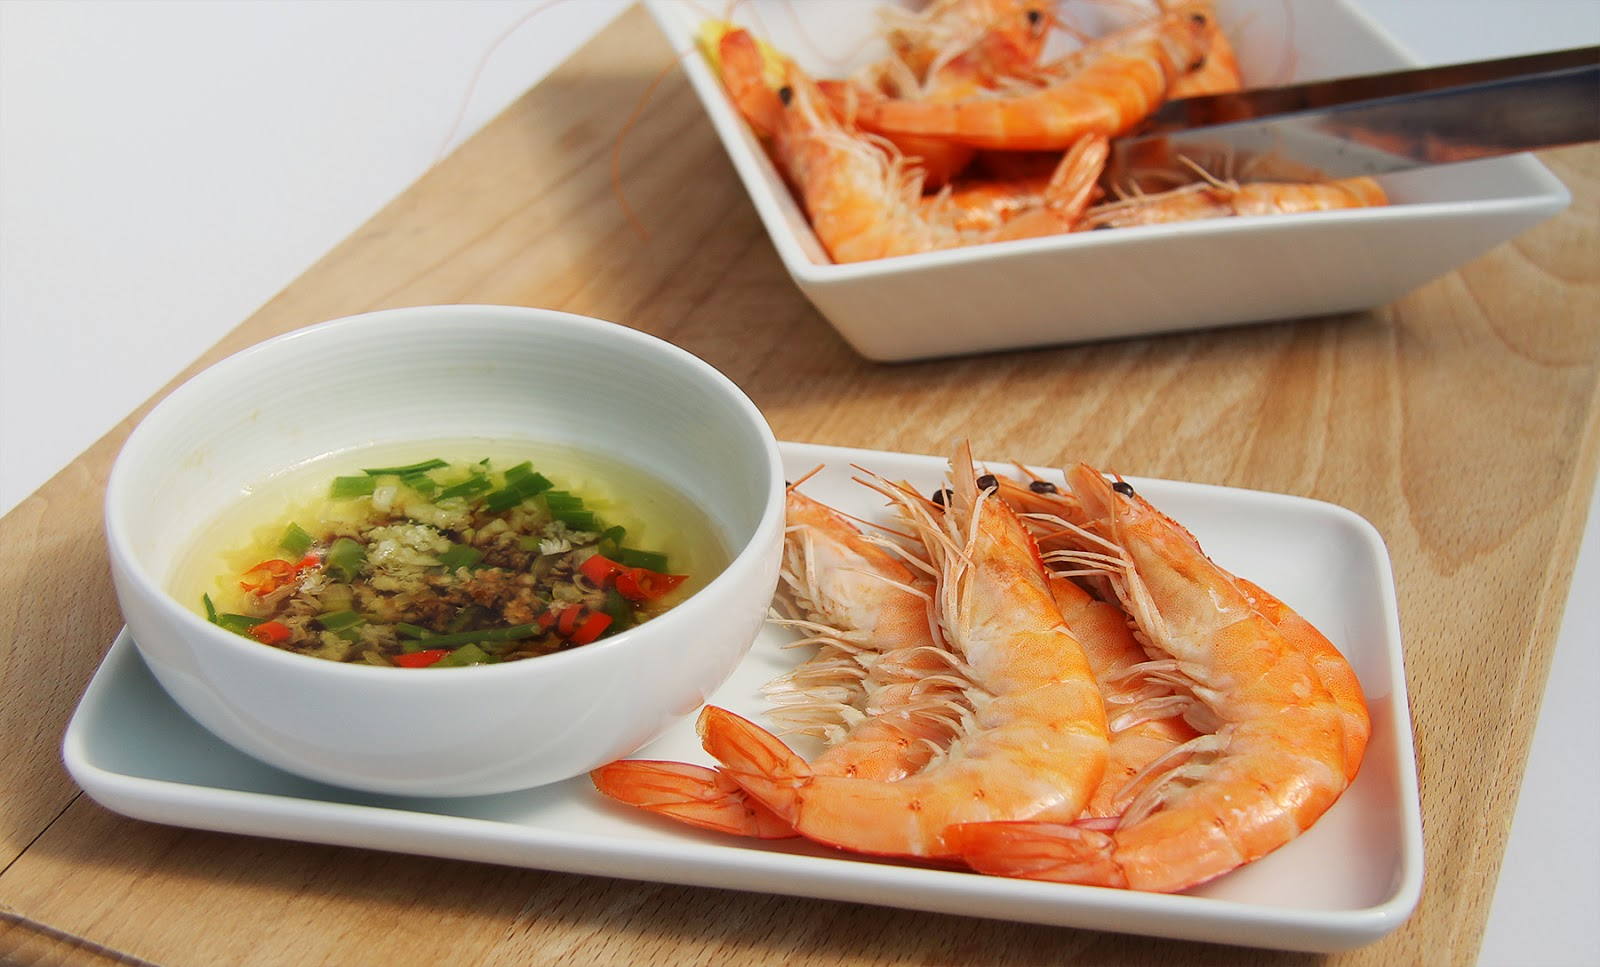 Shelled King Prawns with Garlic Dipping Sauce